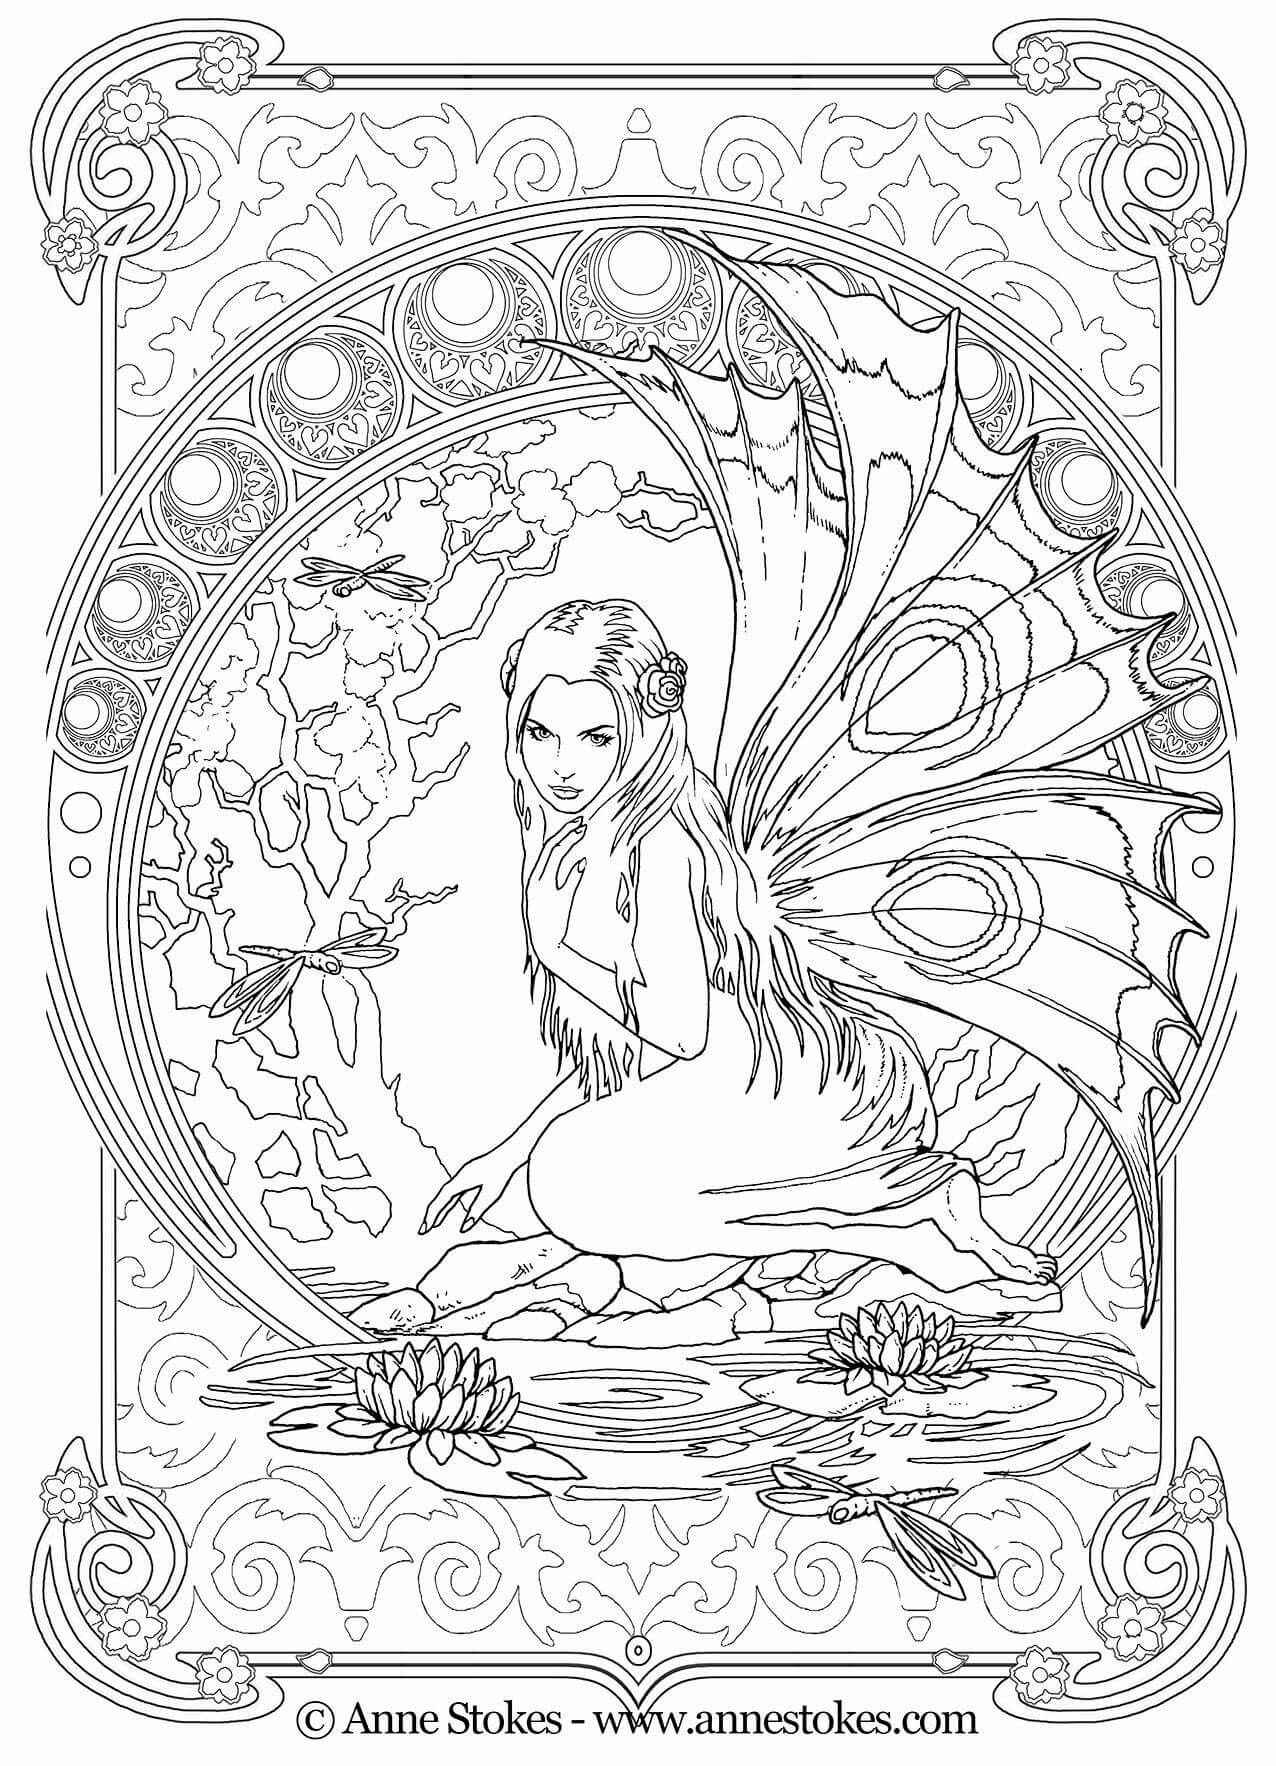 Pin By Coloring Pages For Adults On Coloring Pictures Fairy Coloring Pages Fairy Coloring Coloring Books